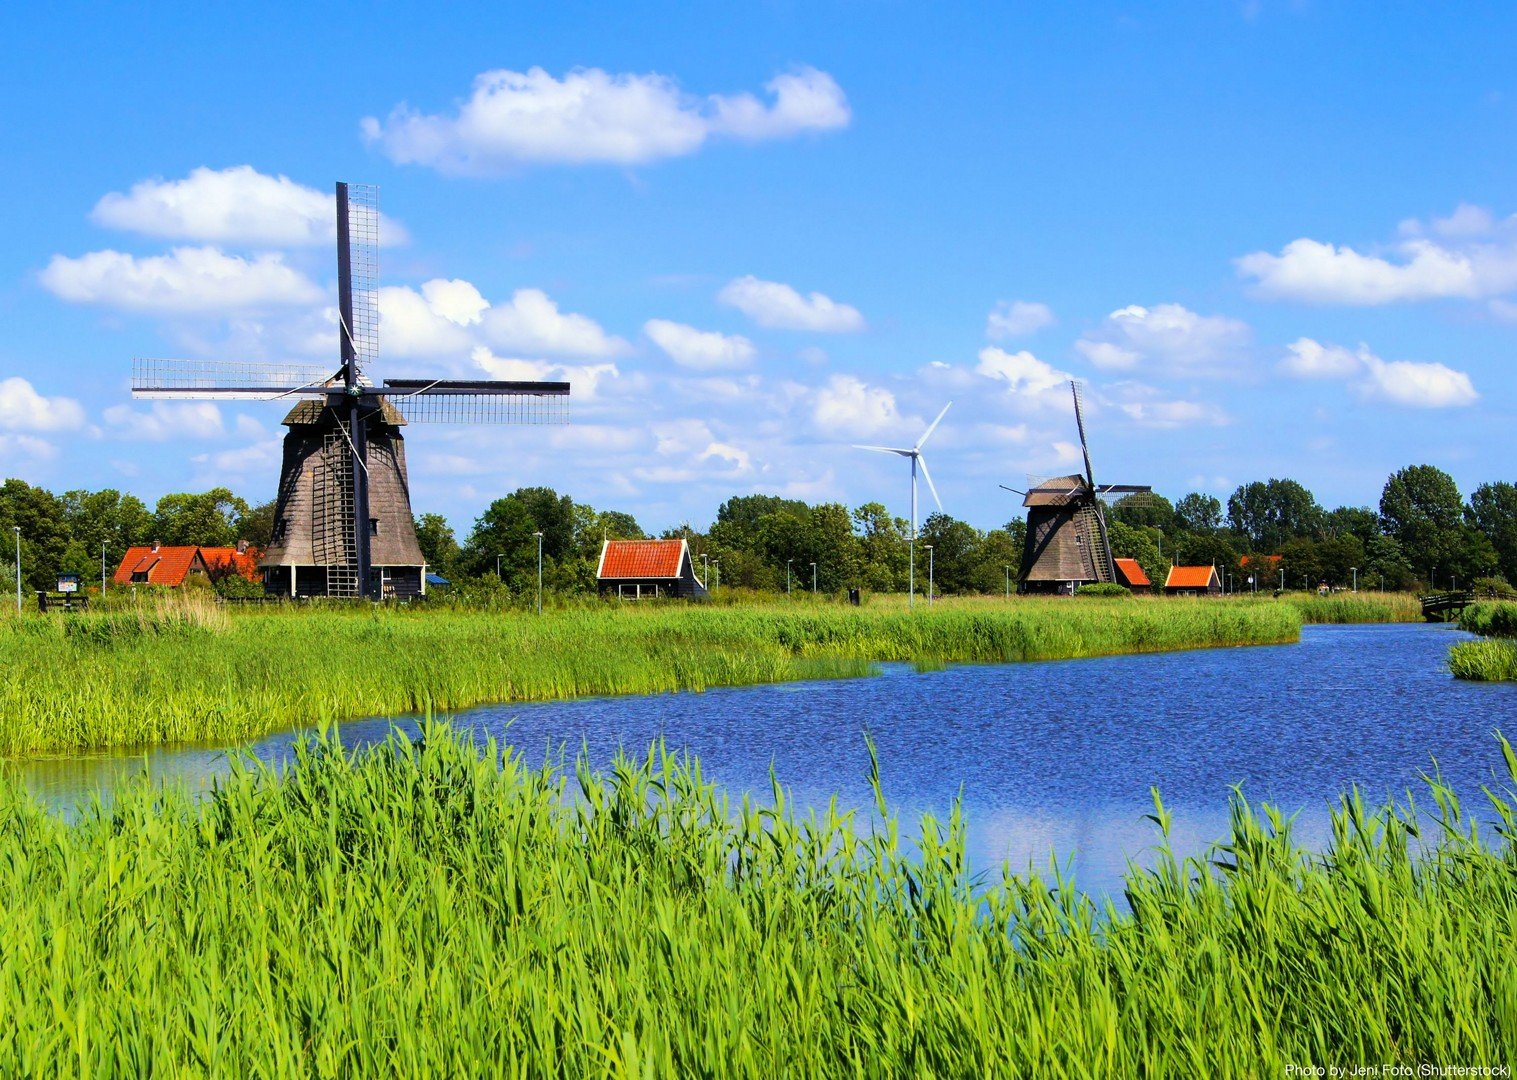 family-cycling-holidays-self-guided-holland-dutch-discoveries-canals-and-castles-holiday.jpg - NEW! Holland - Dutch Discoverer - Canals and Castles - Family Cycling